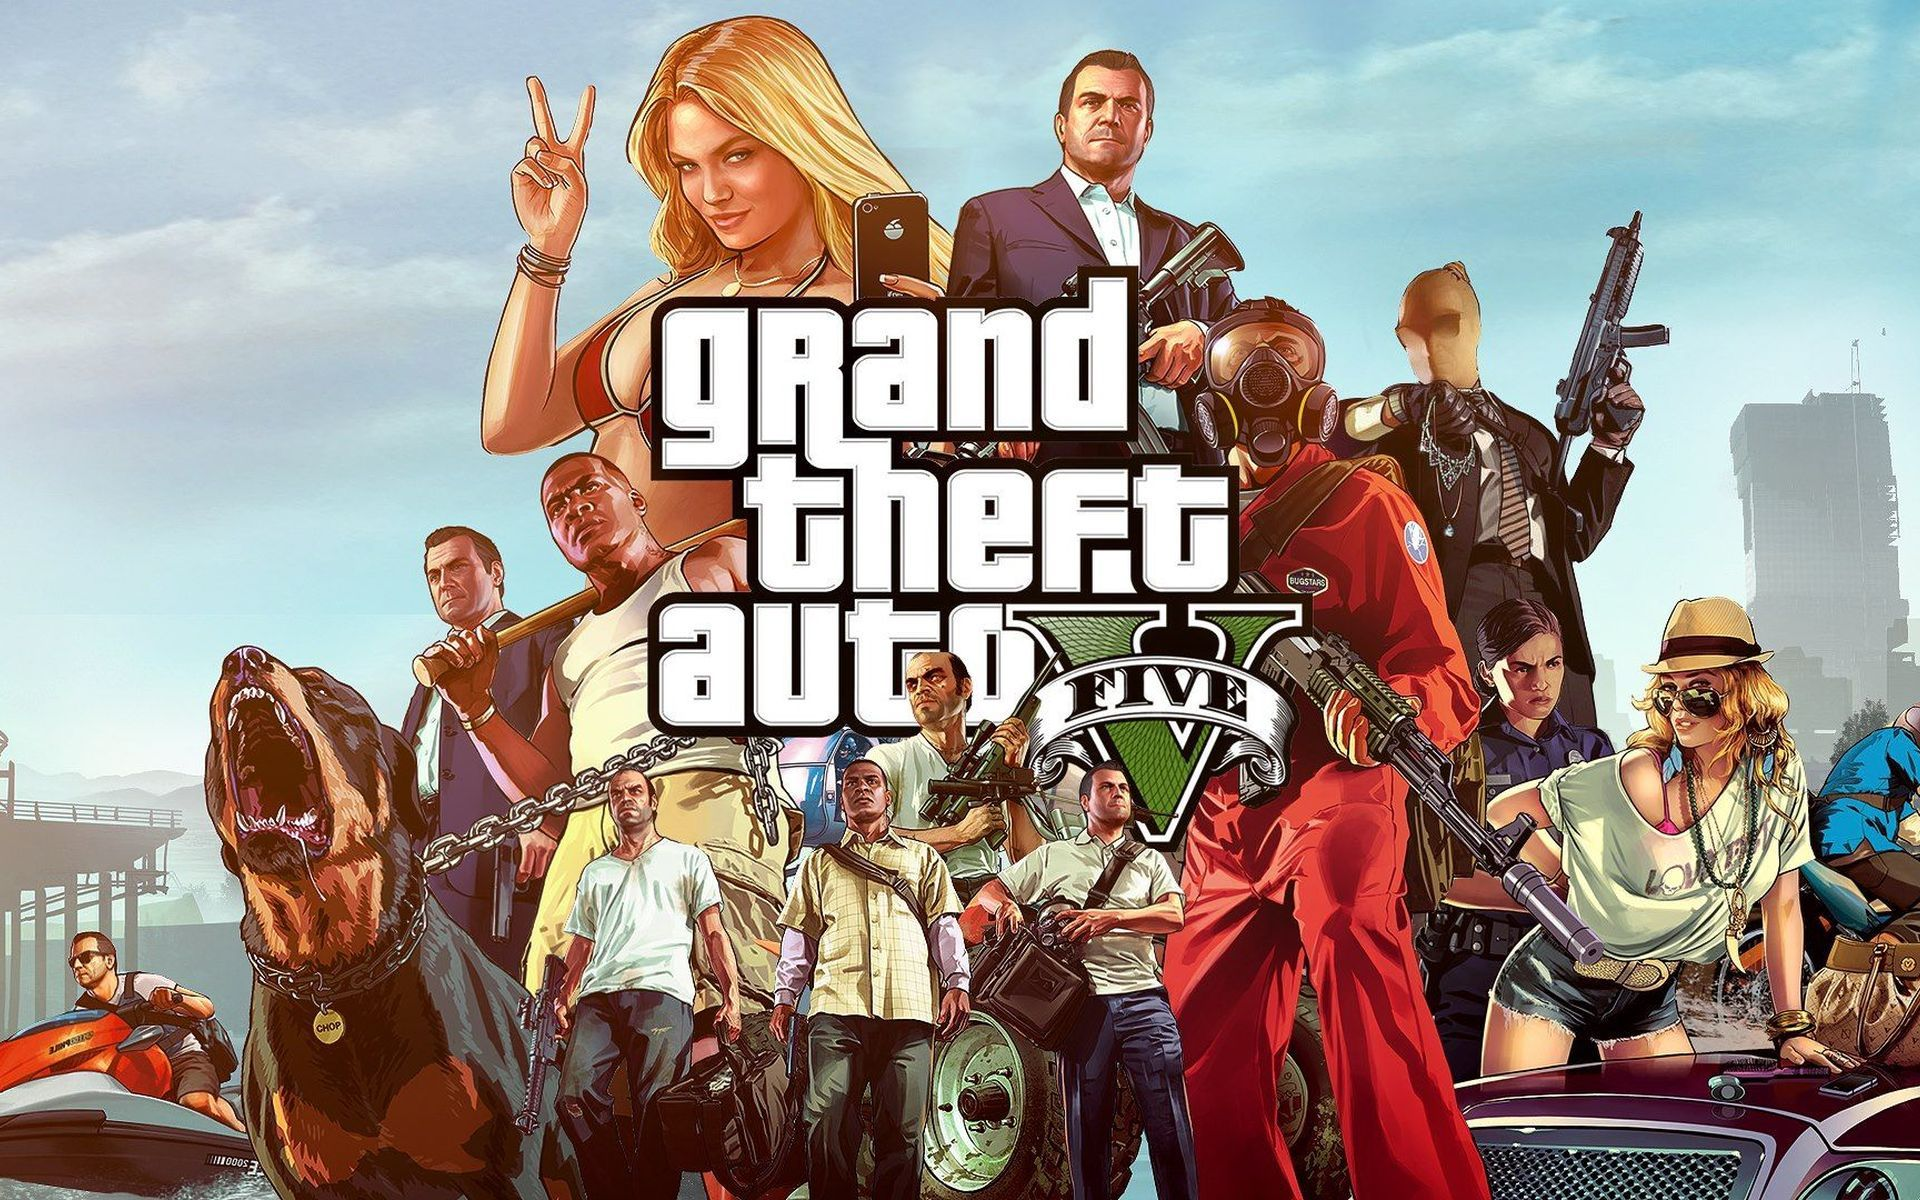 grand theft auto gta wallpapers hd wallpapers | hd wallpapers